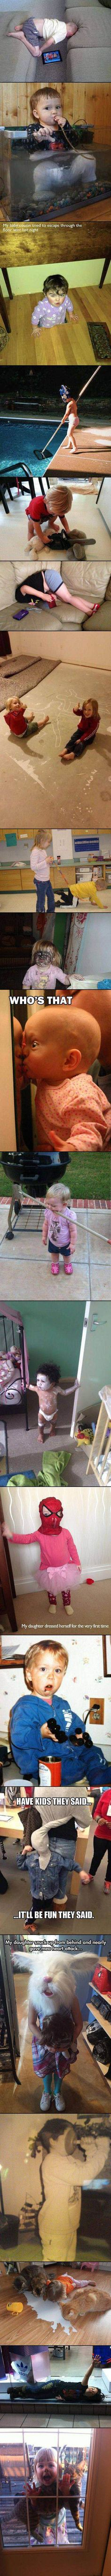 Weird Kids Comp.  // funny pictures - funny photos - funny images - funny pics - funny quotes - #lol #humor #funnypictures